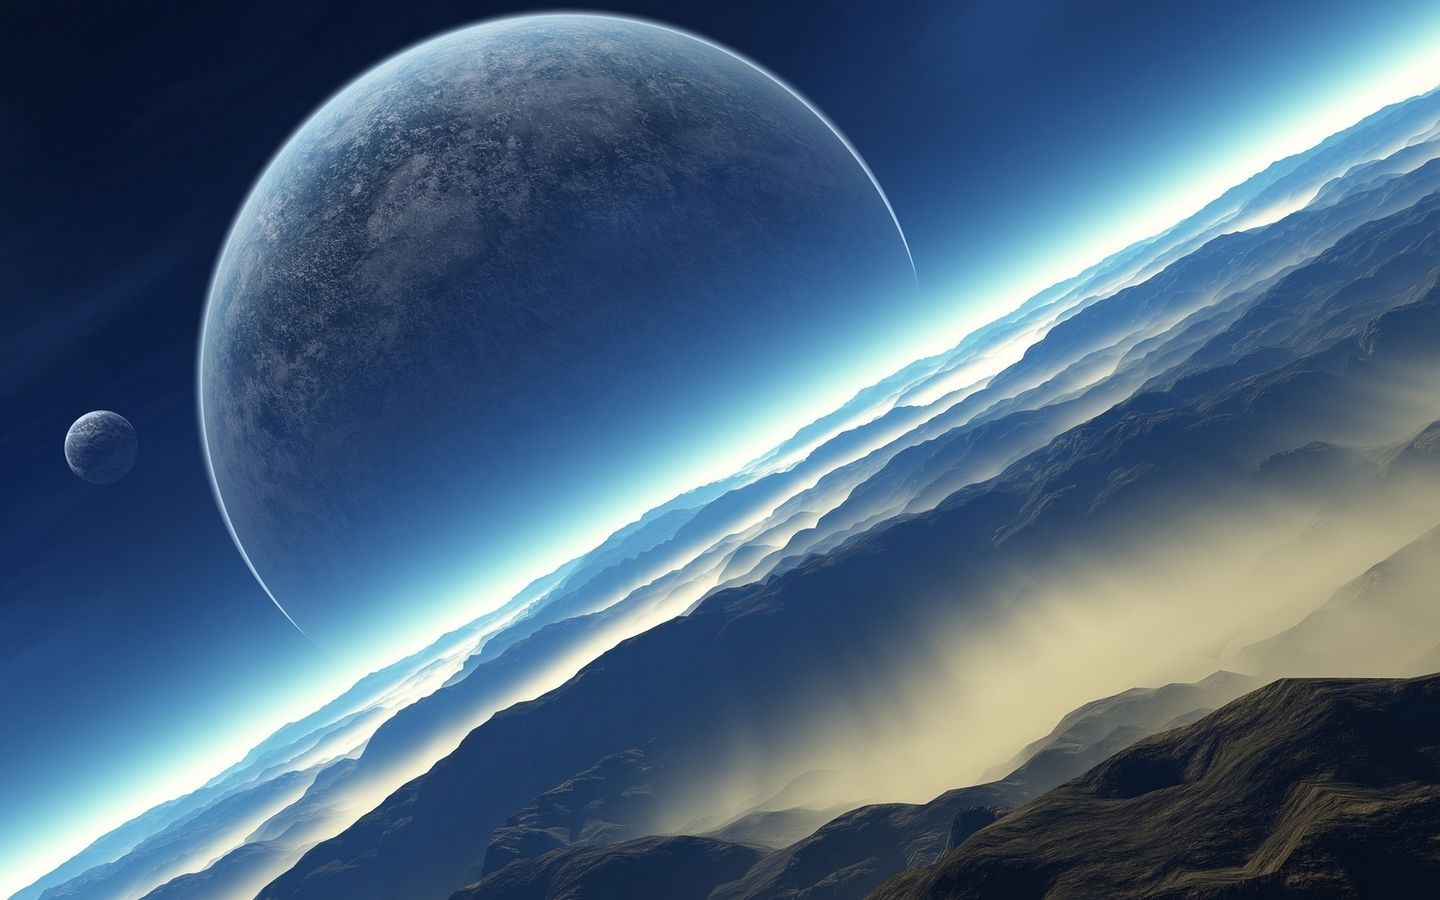 1440x900 - Solar System Wallpapers 25